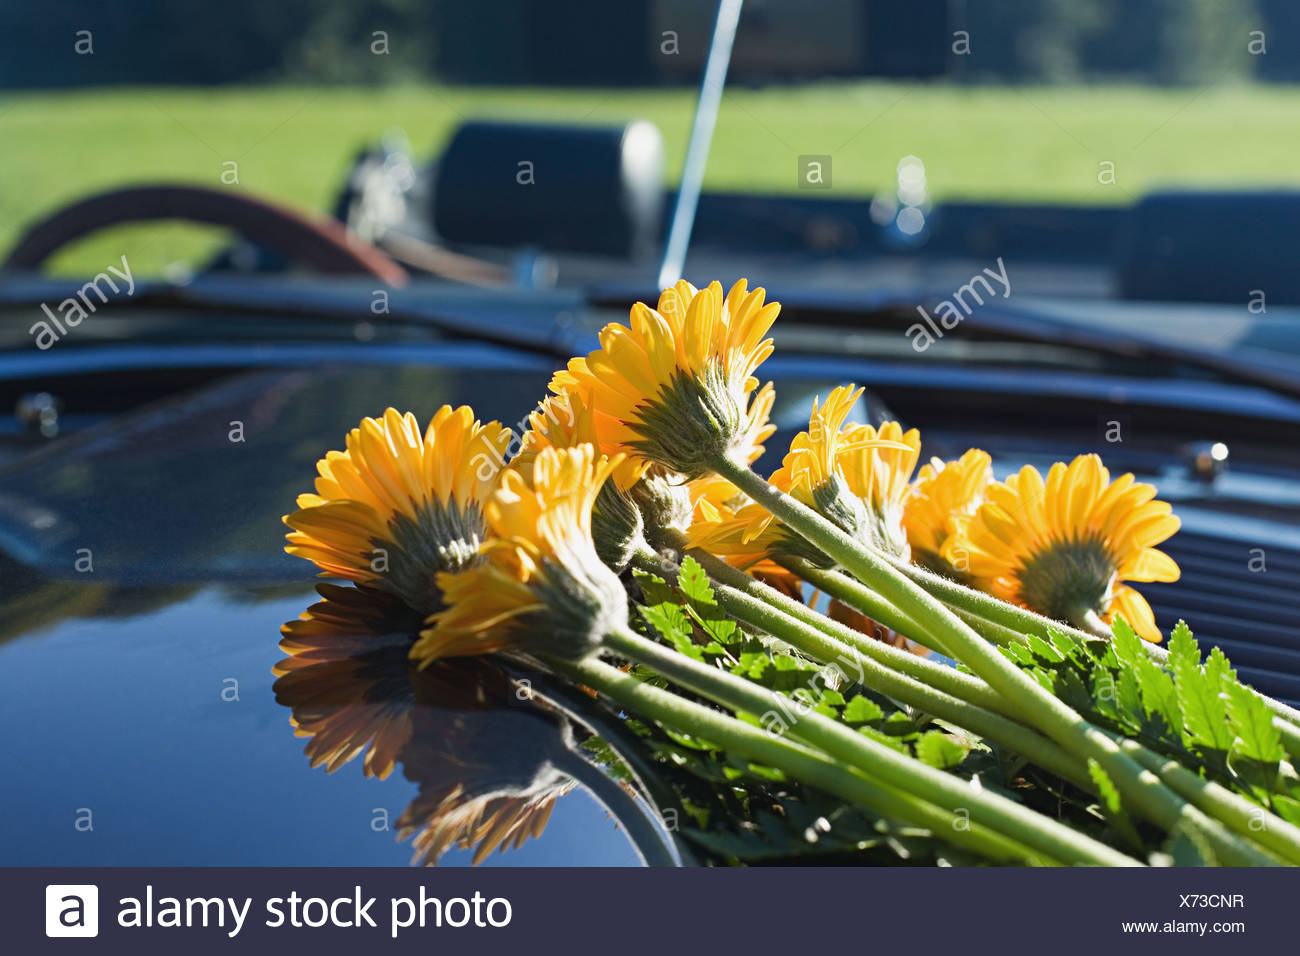 Flowers on a car hood - Stock Image